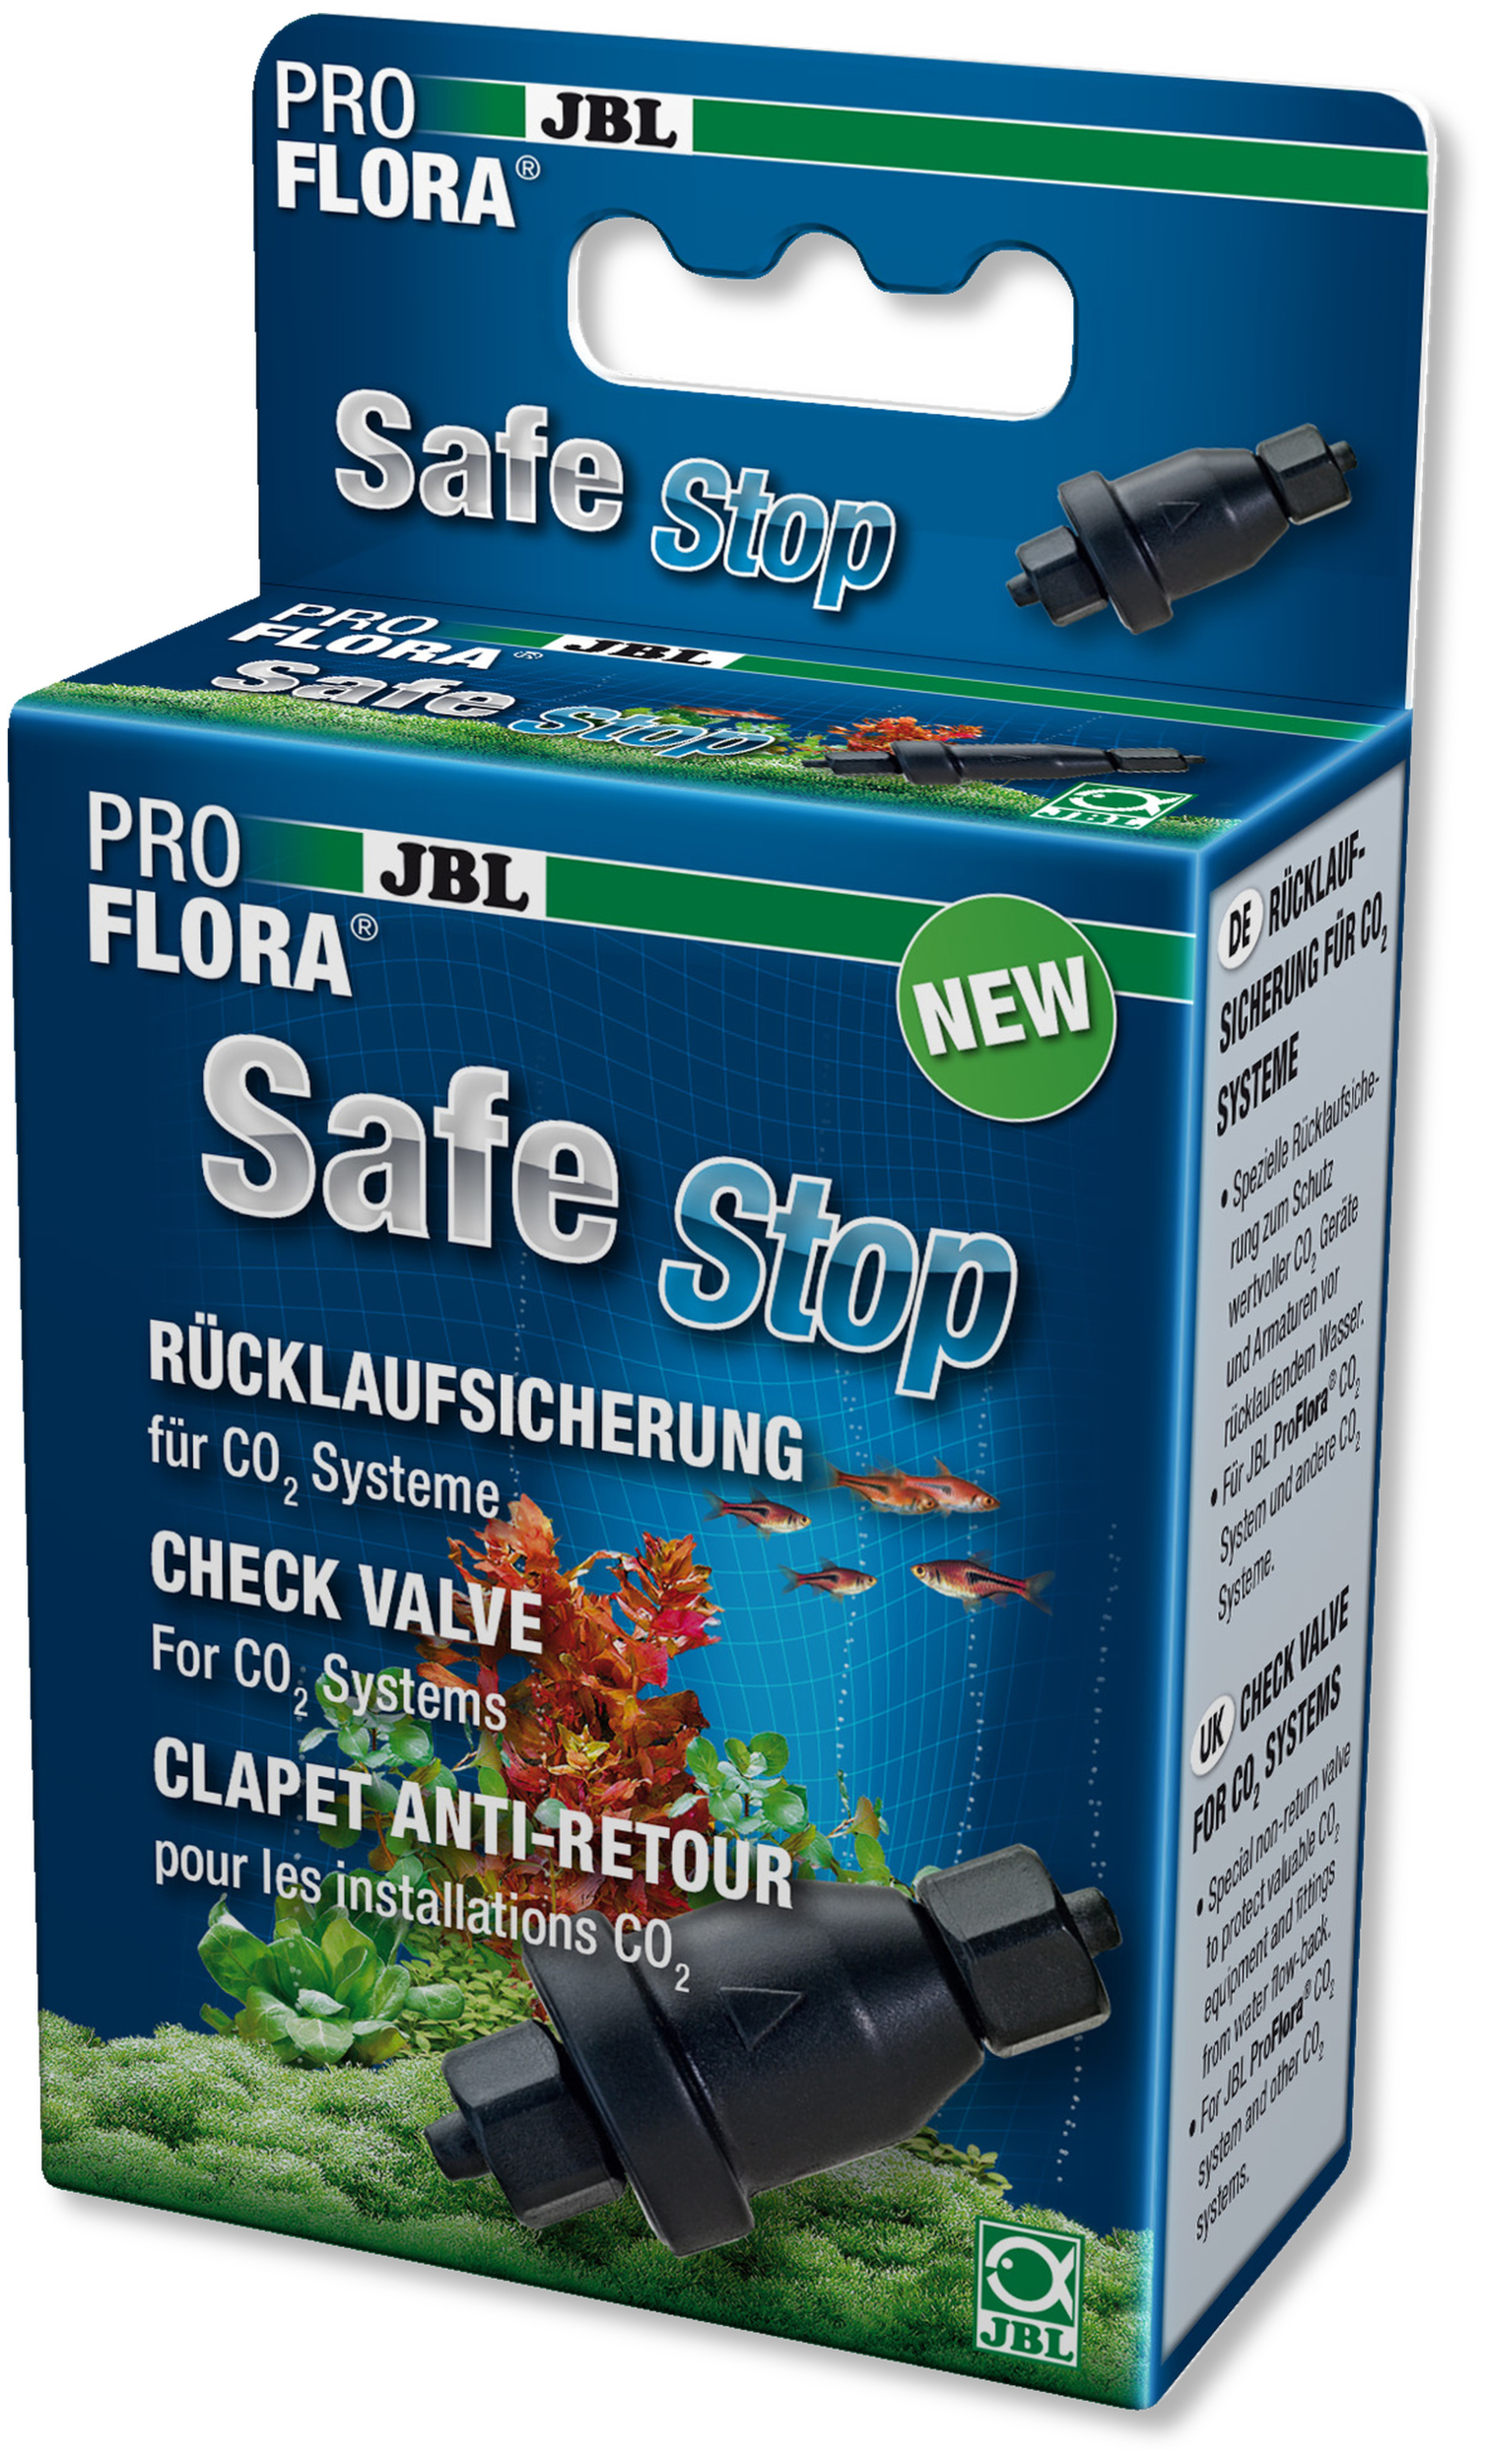 jbl-proflora-safestop-clapet-anti-retour-co2-aquarium